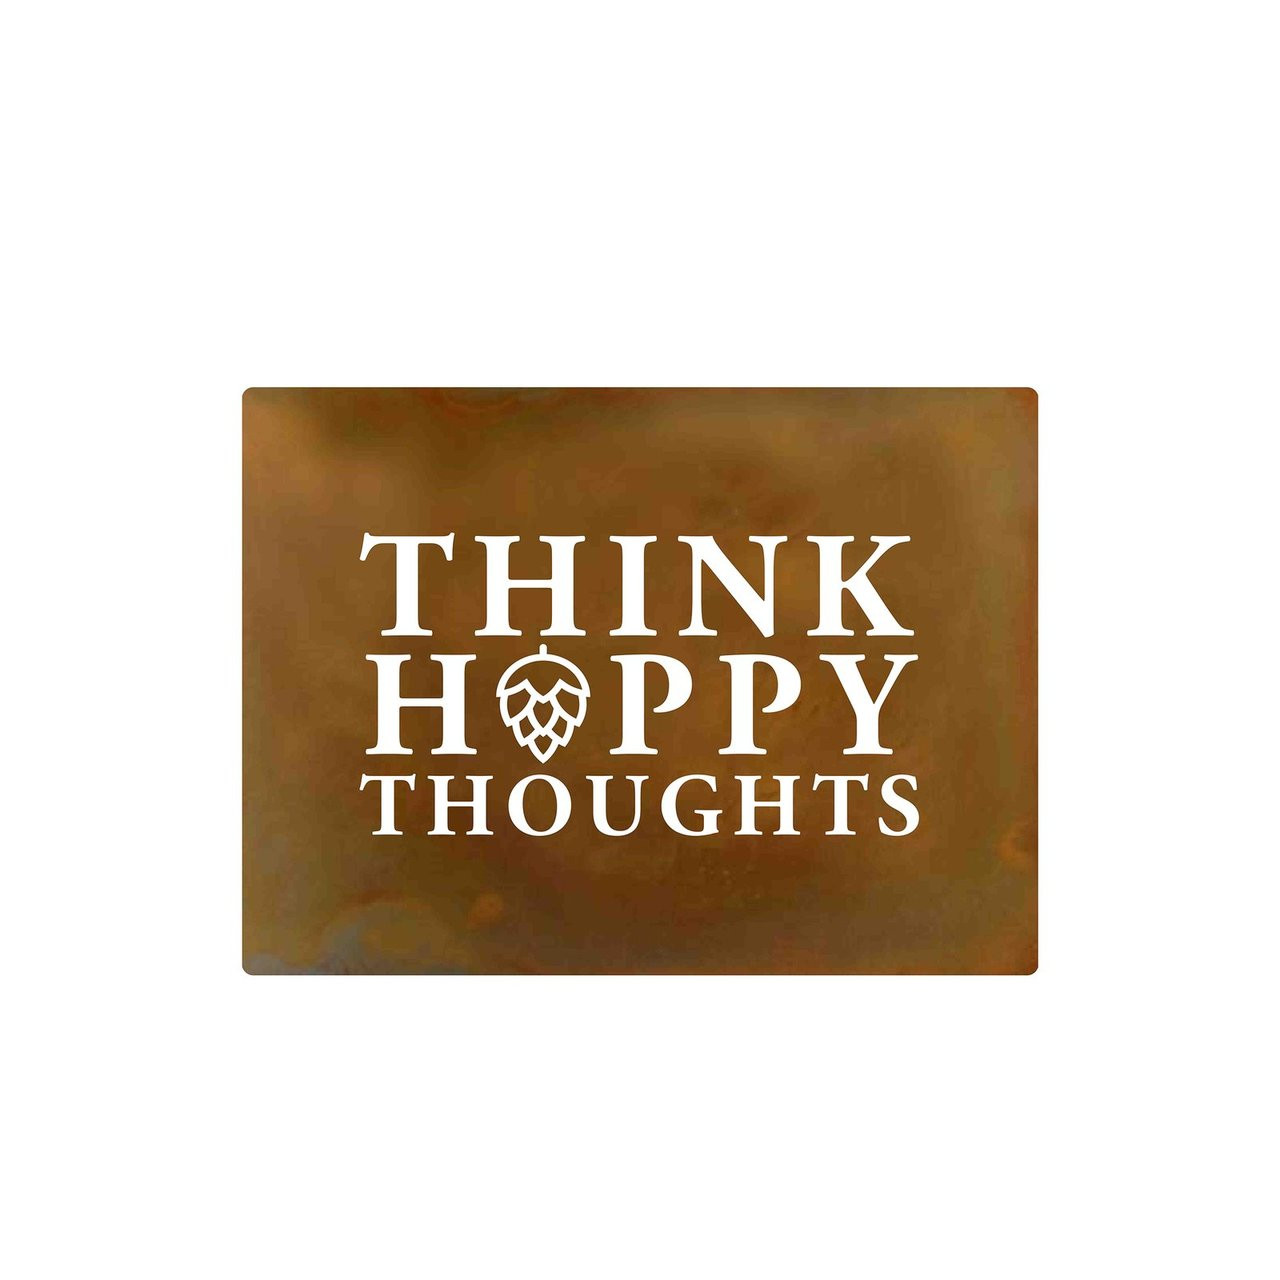 Hand-Crafted 'Think Hoppy Thoughts' Metal Wall Decor